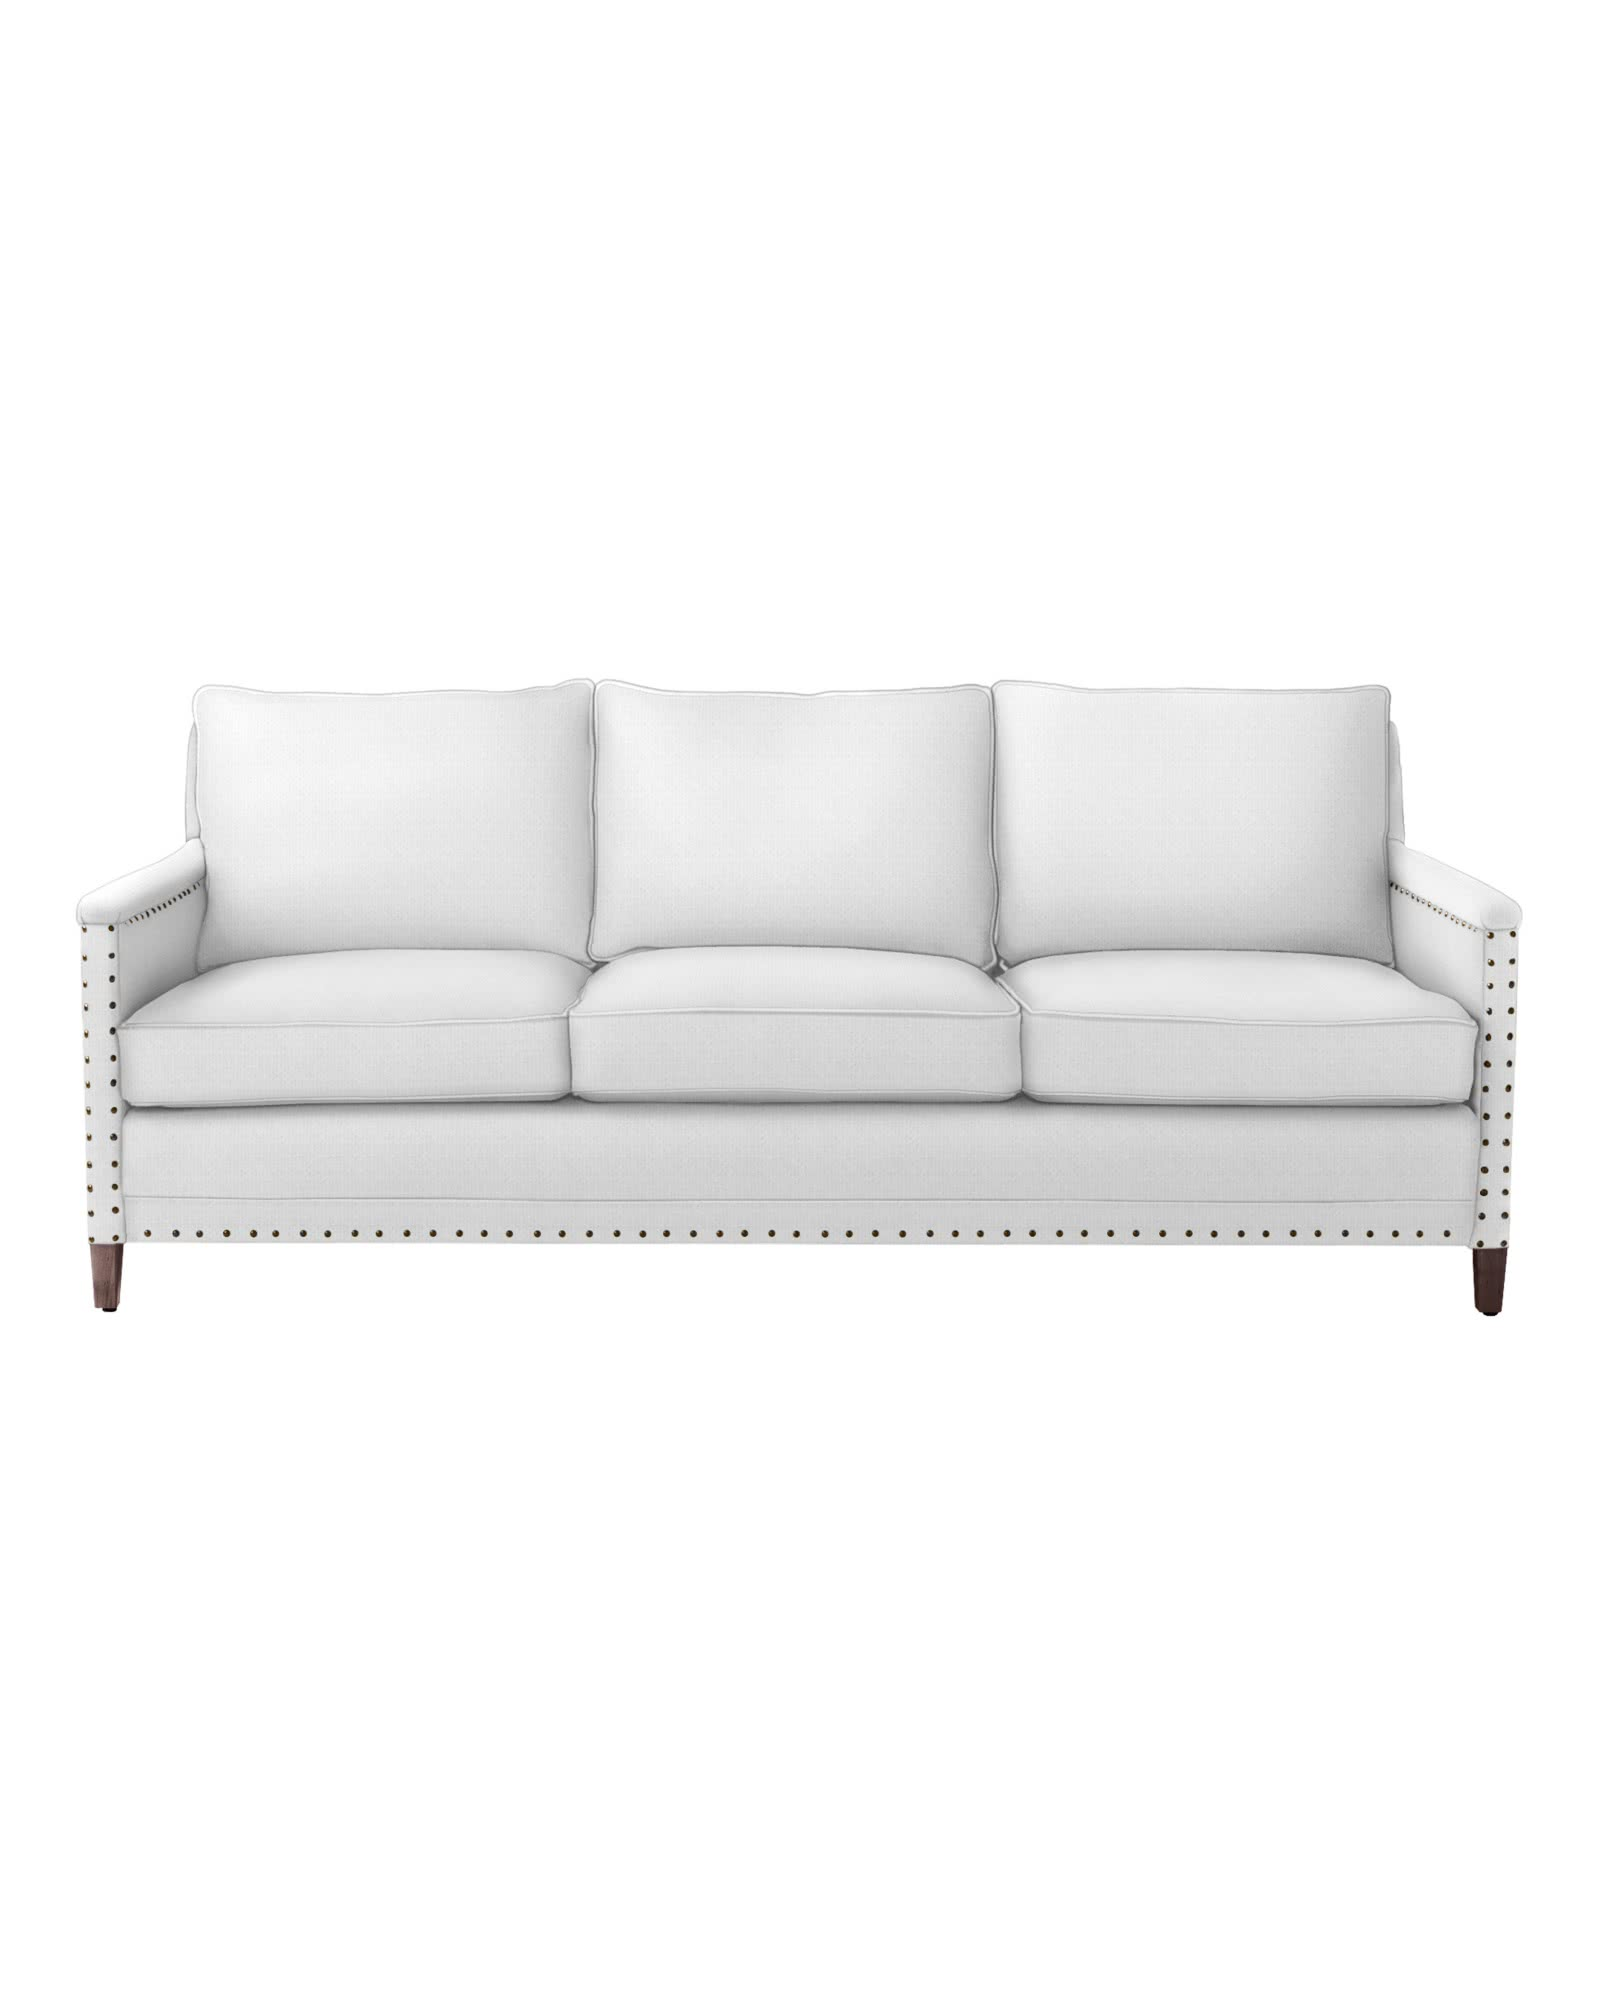 Spruce Street 3-Seat Sofa with Nailheads,